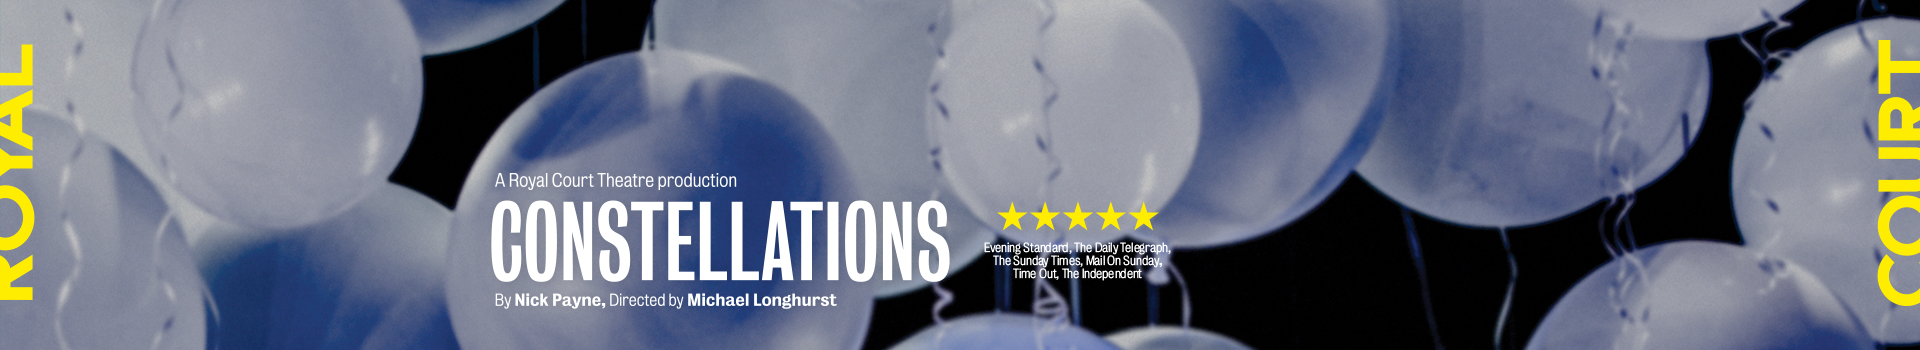 Constellations tickets Southampton Nuffield Theatre